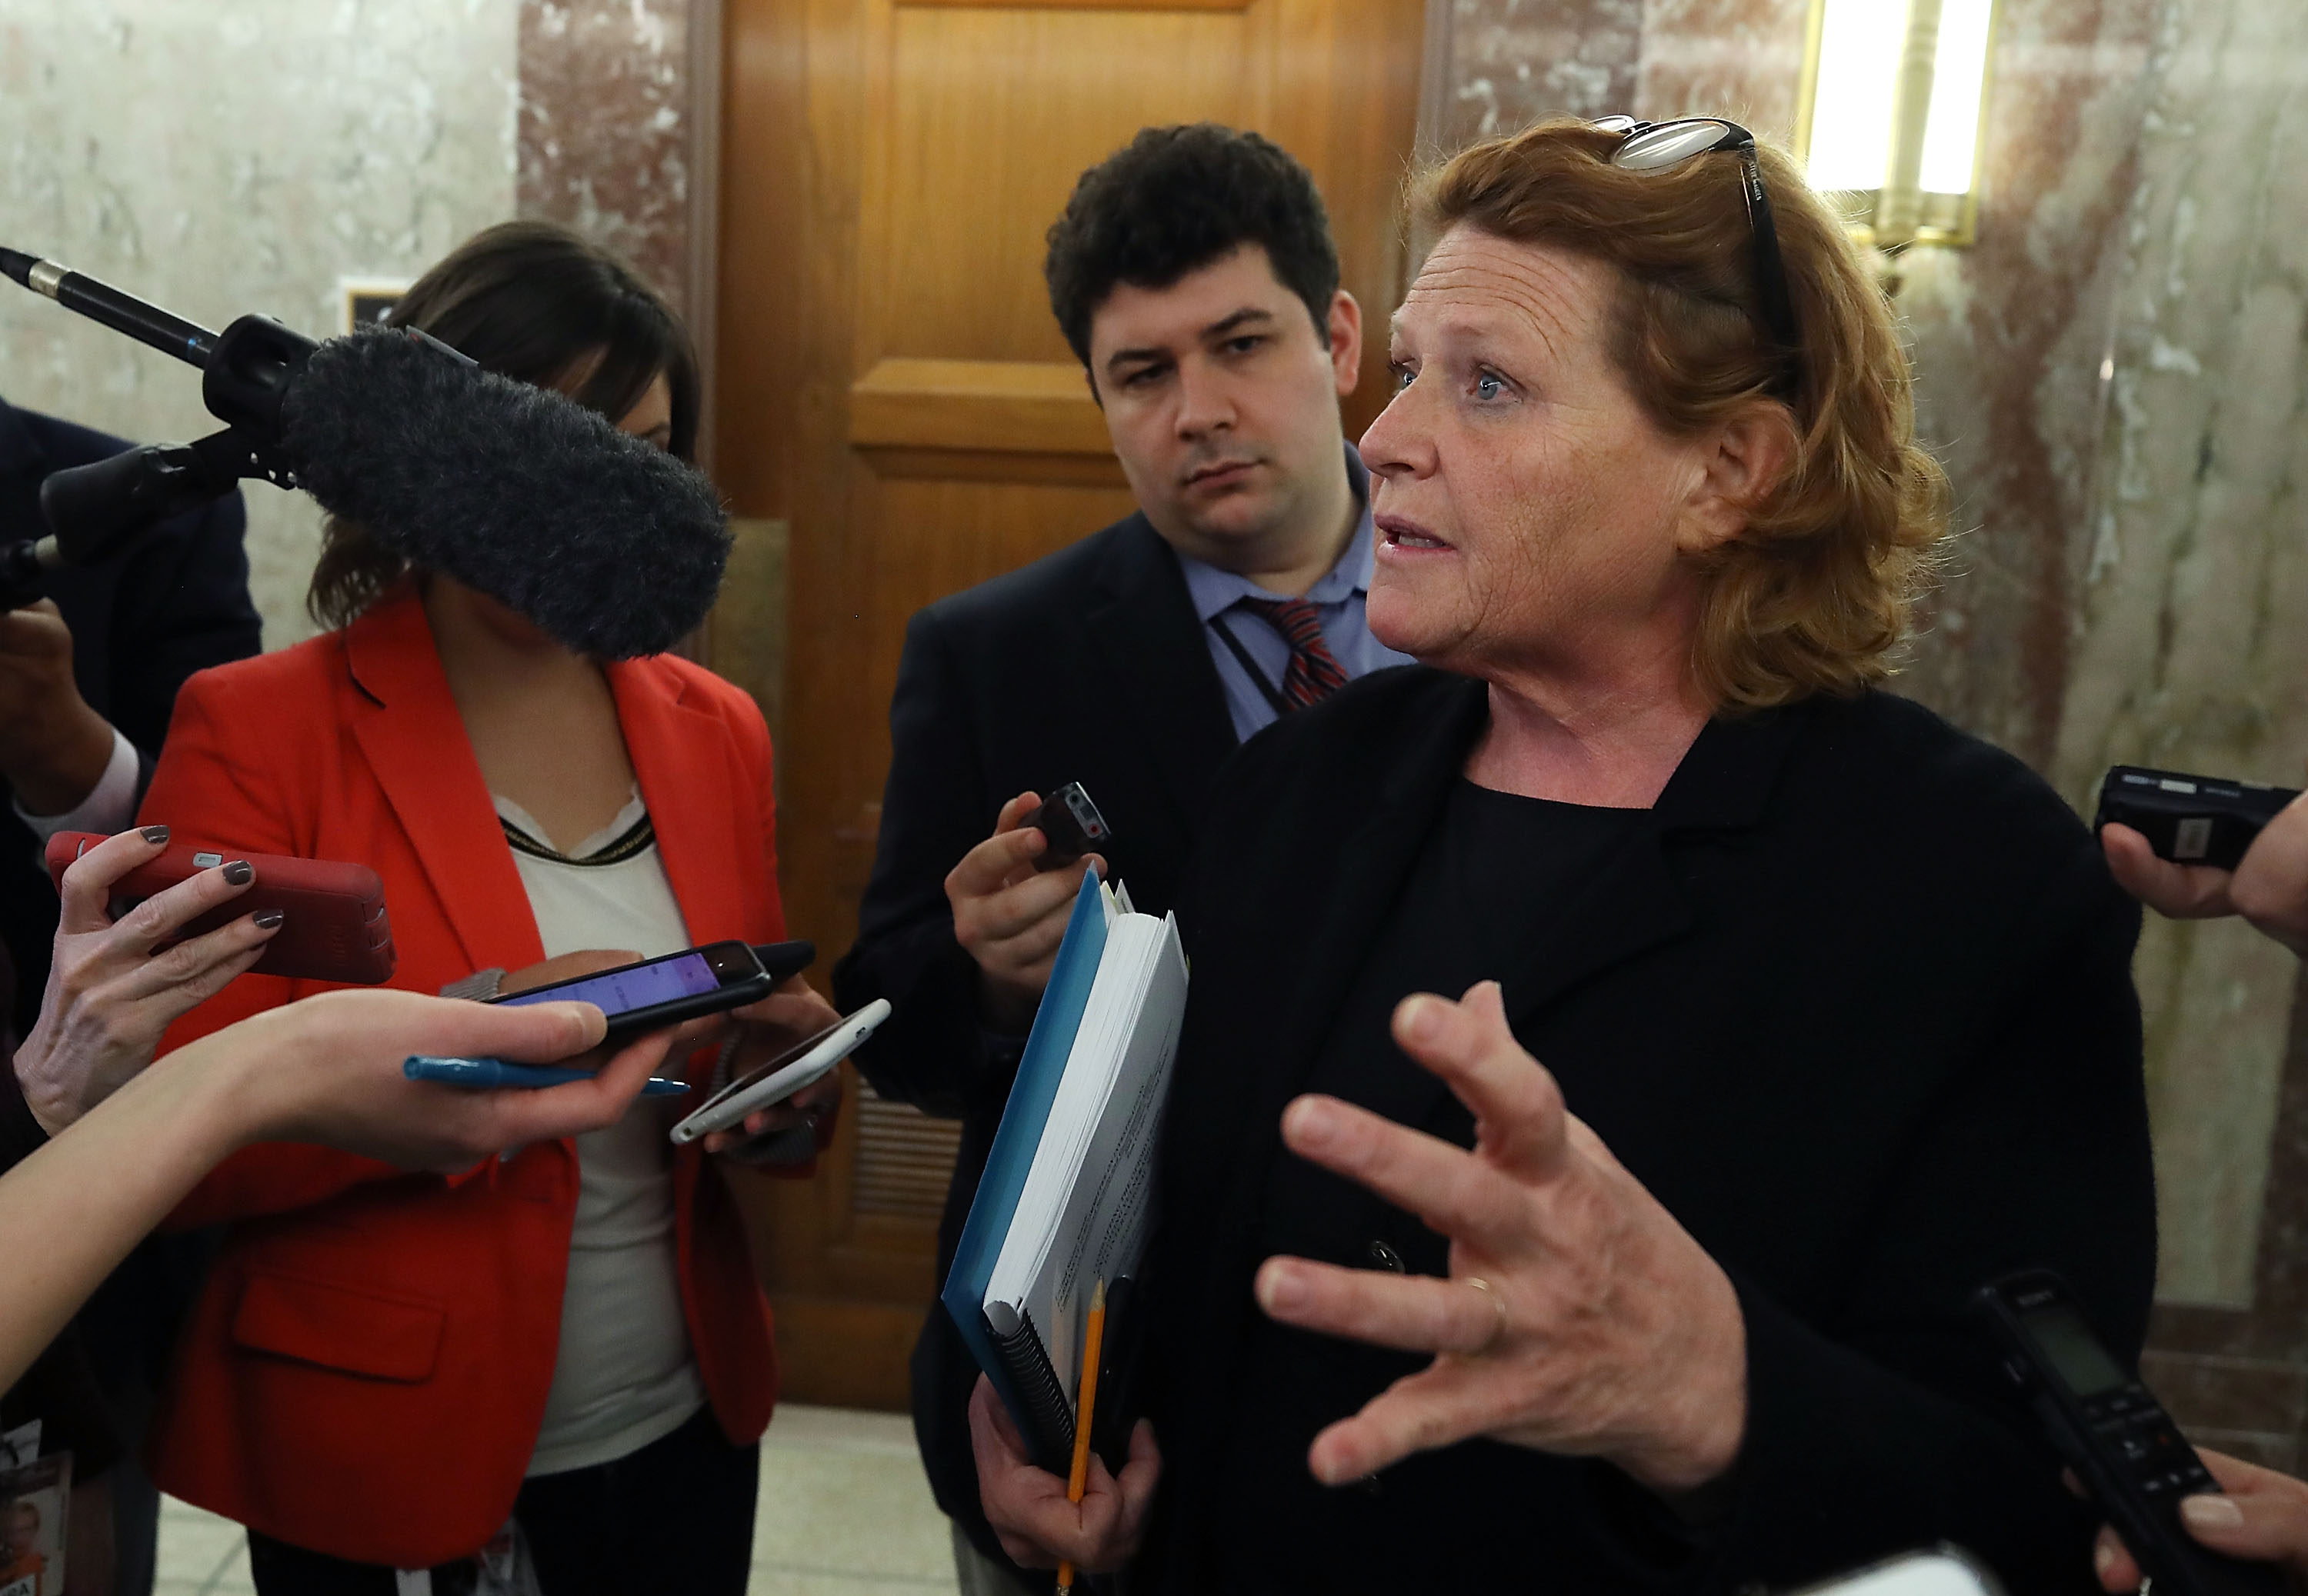 WASHINGTON, DC - JANUARY 25: Sen. Heidi Heitkamp (D-ND) speaks to the media about immigration, after attending a bipartisan meeting in Sen. Susan Collins office, on Capitol Hill January 25, 2018 in Washington, DC. (Photo by Mark Wilson/Getty Images)